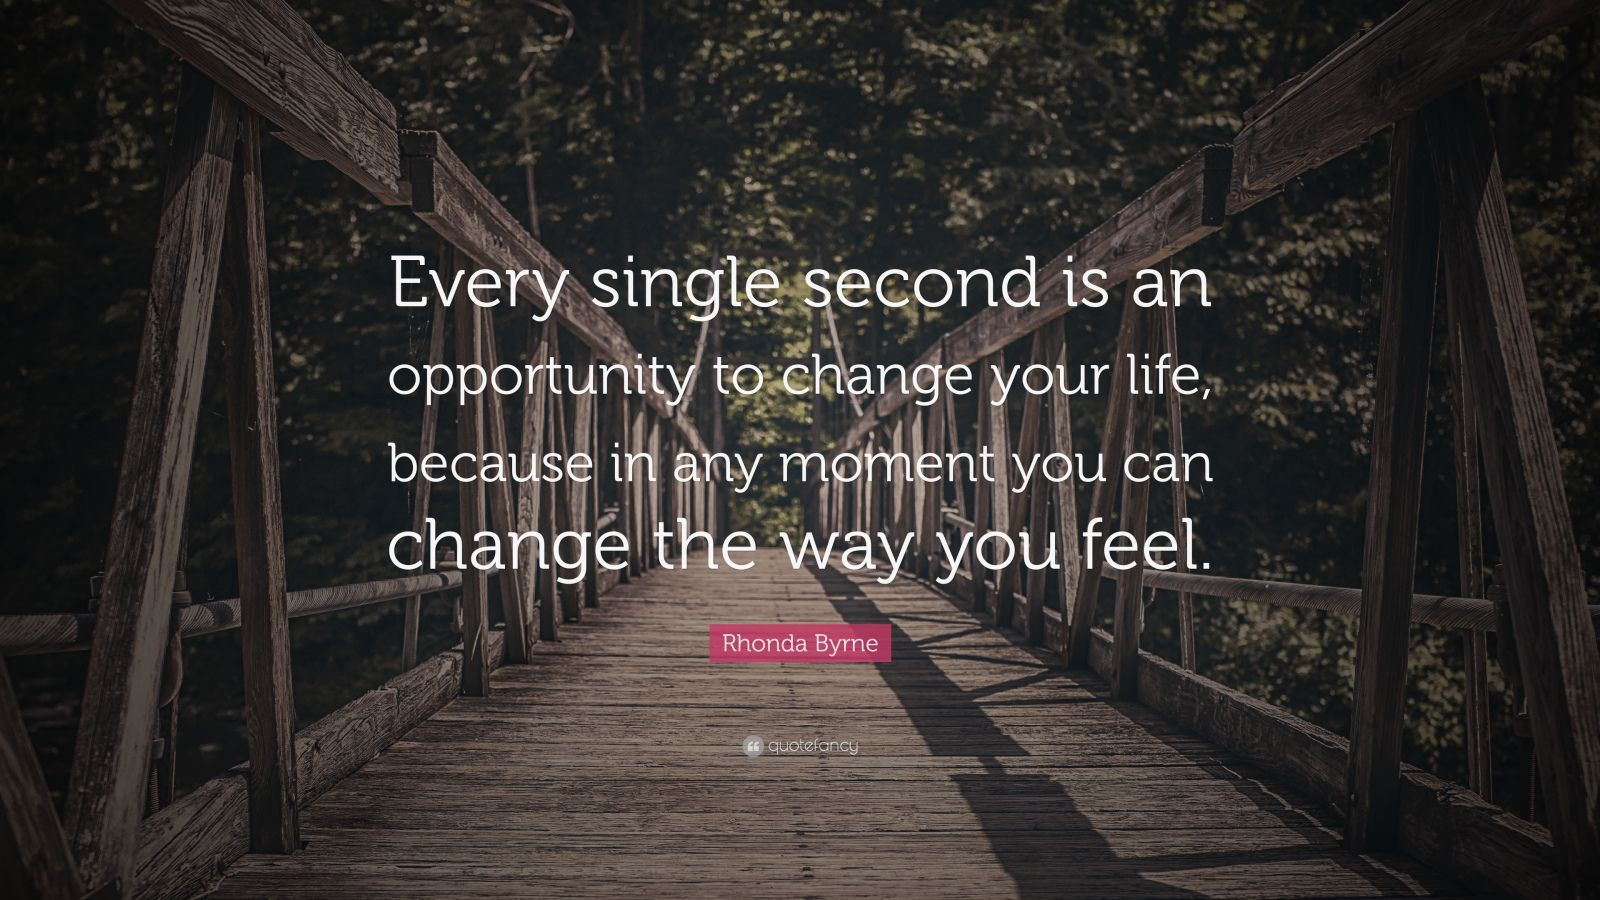 """Rhonda Byrne Quote: """"Every single second is an opportunity to change your life, because in any moment you can change the way you feel."""""""